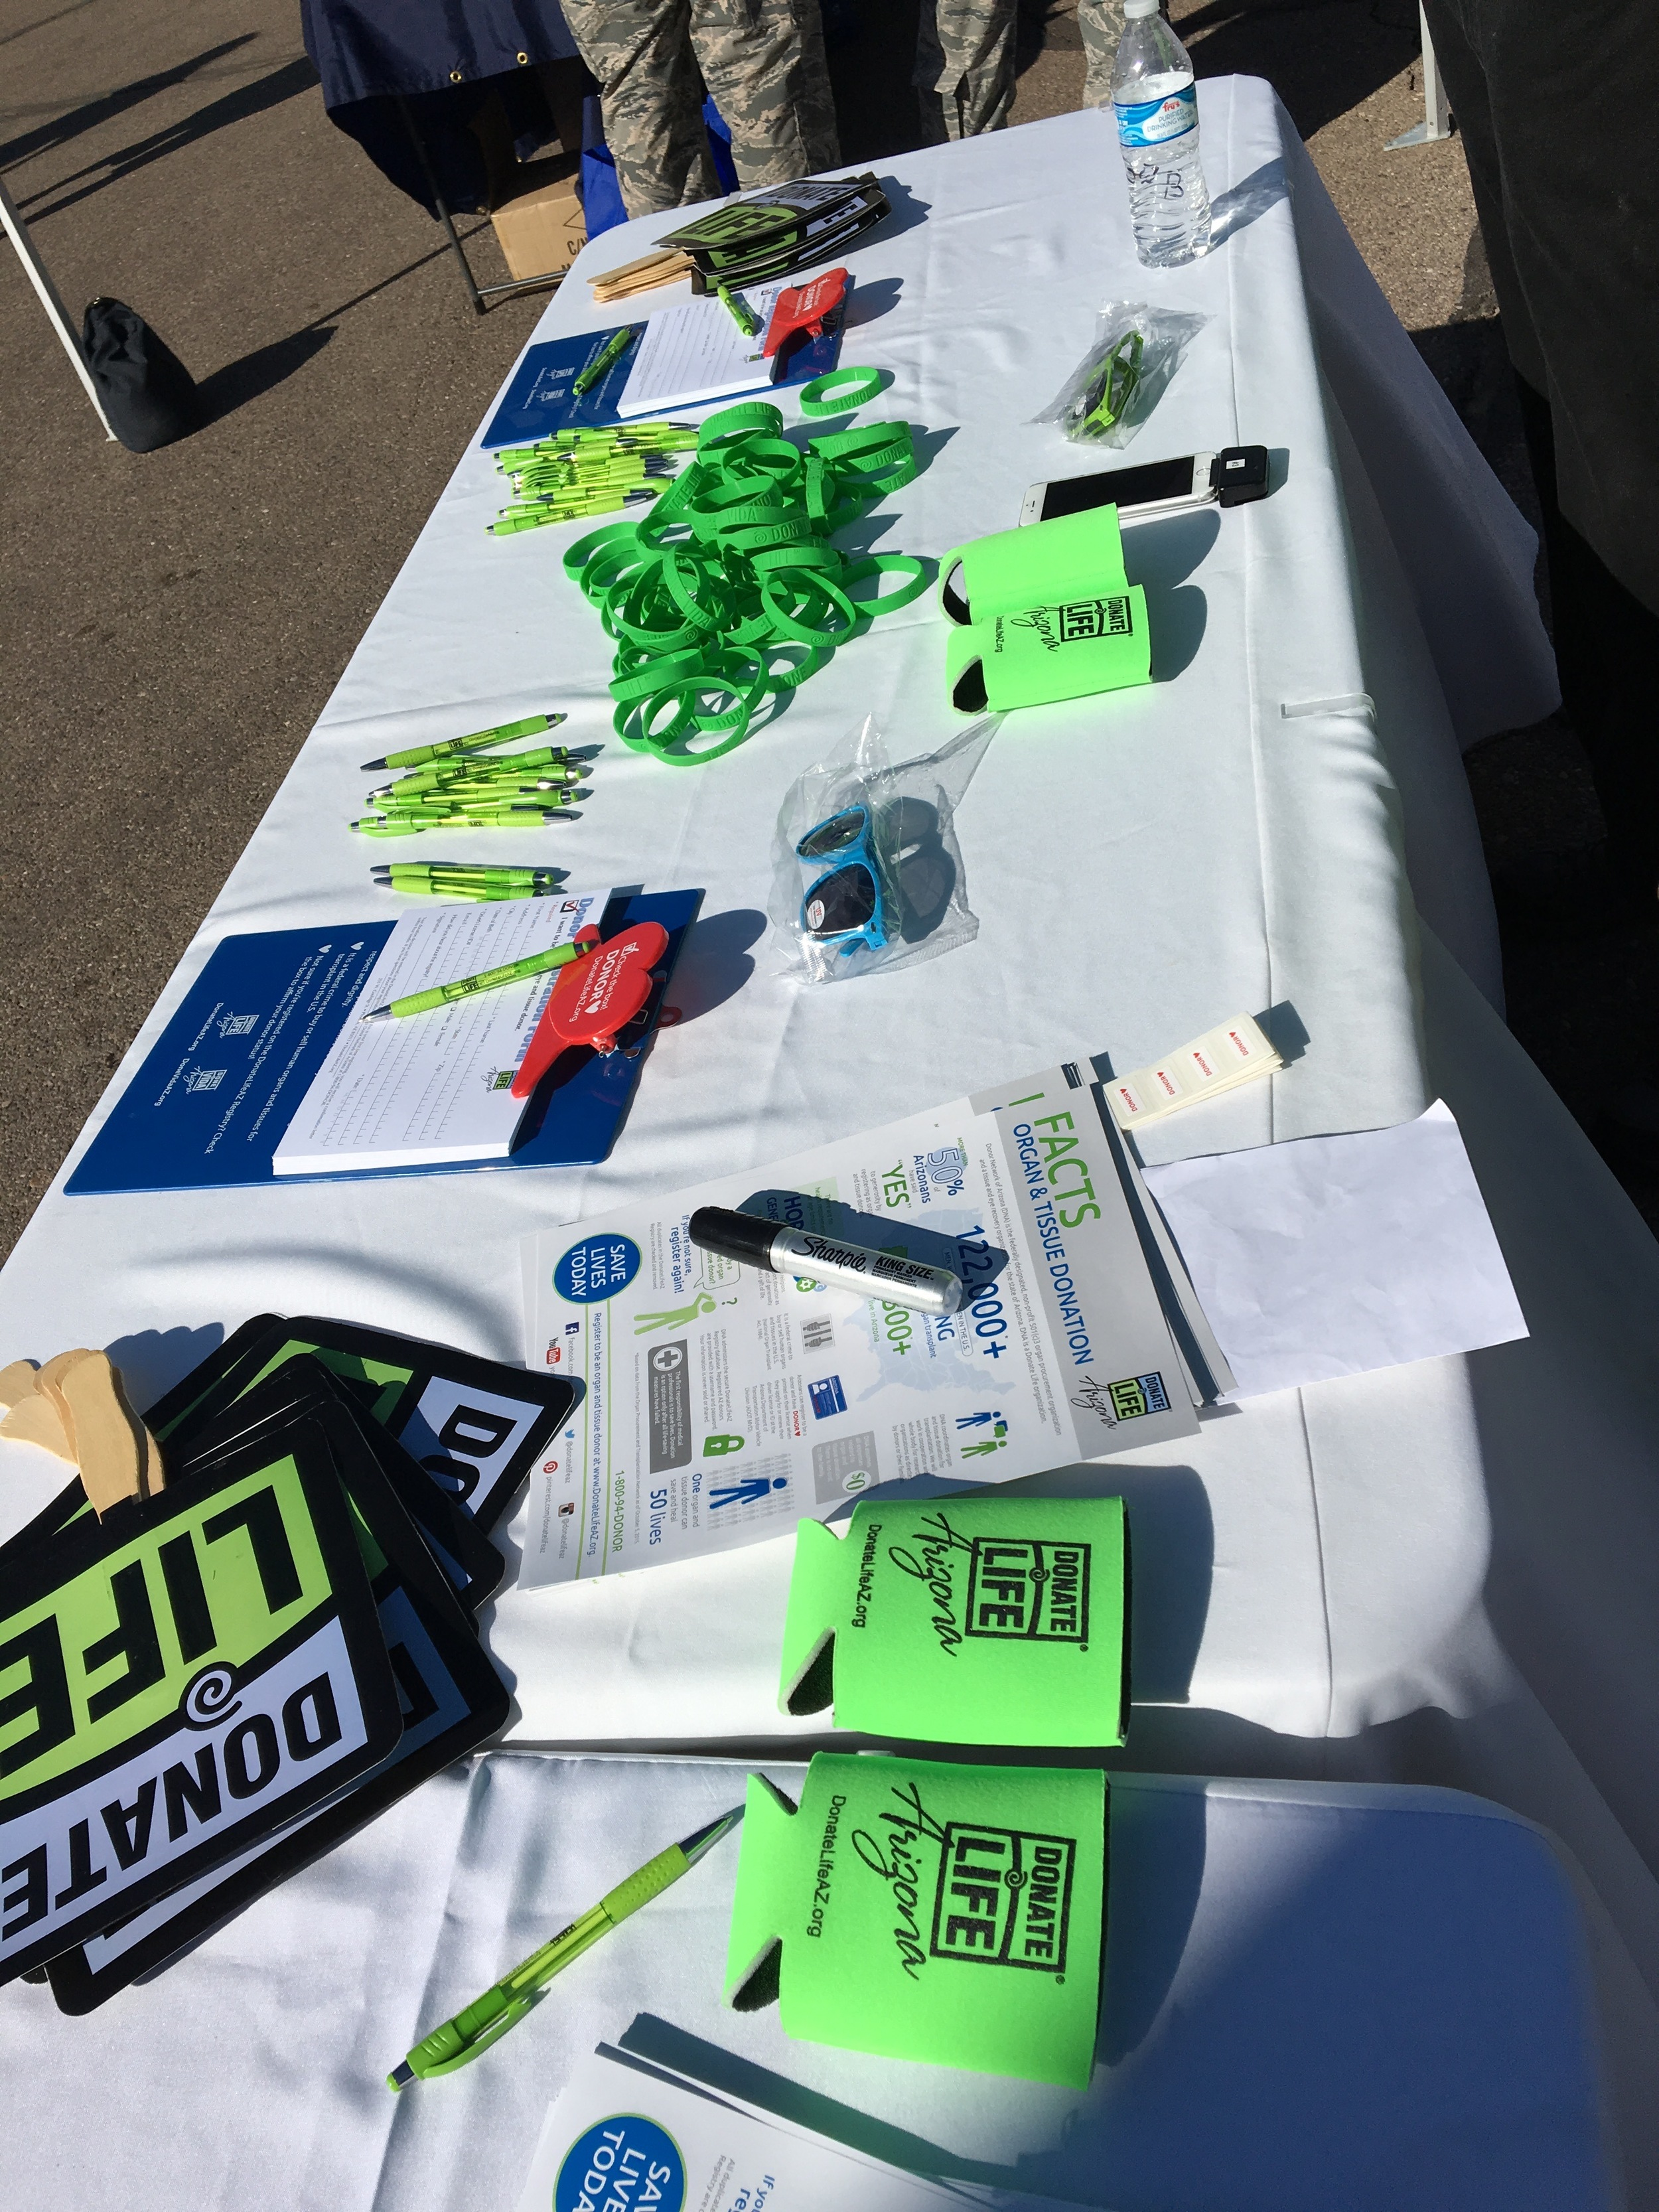 Some of the stuff we gave away at our booth...glasses were the favorite today!